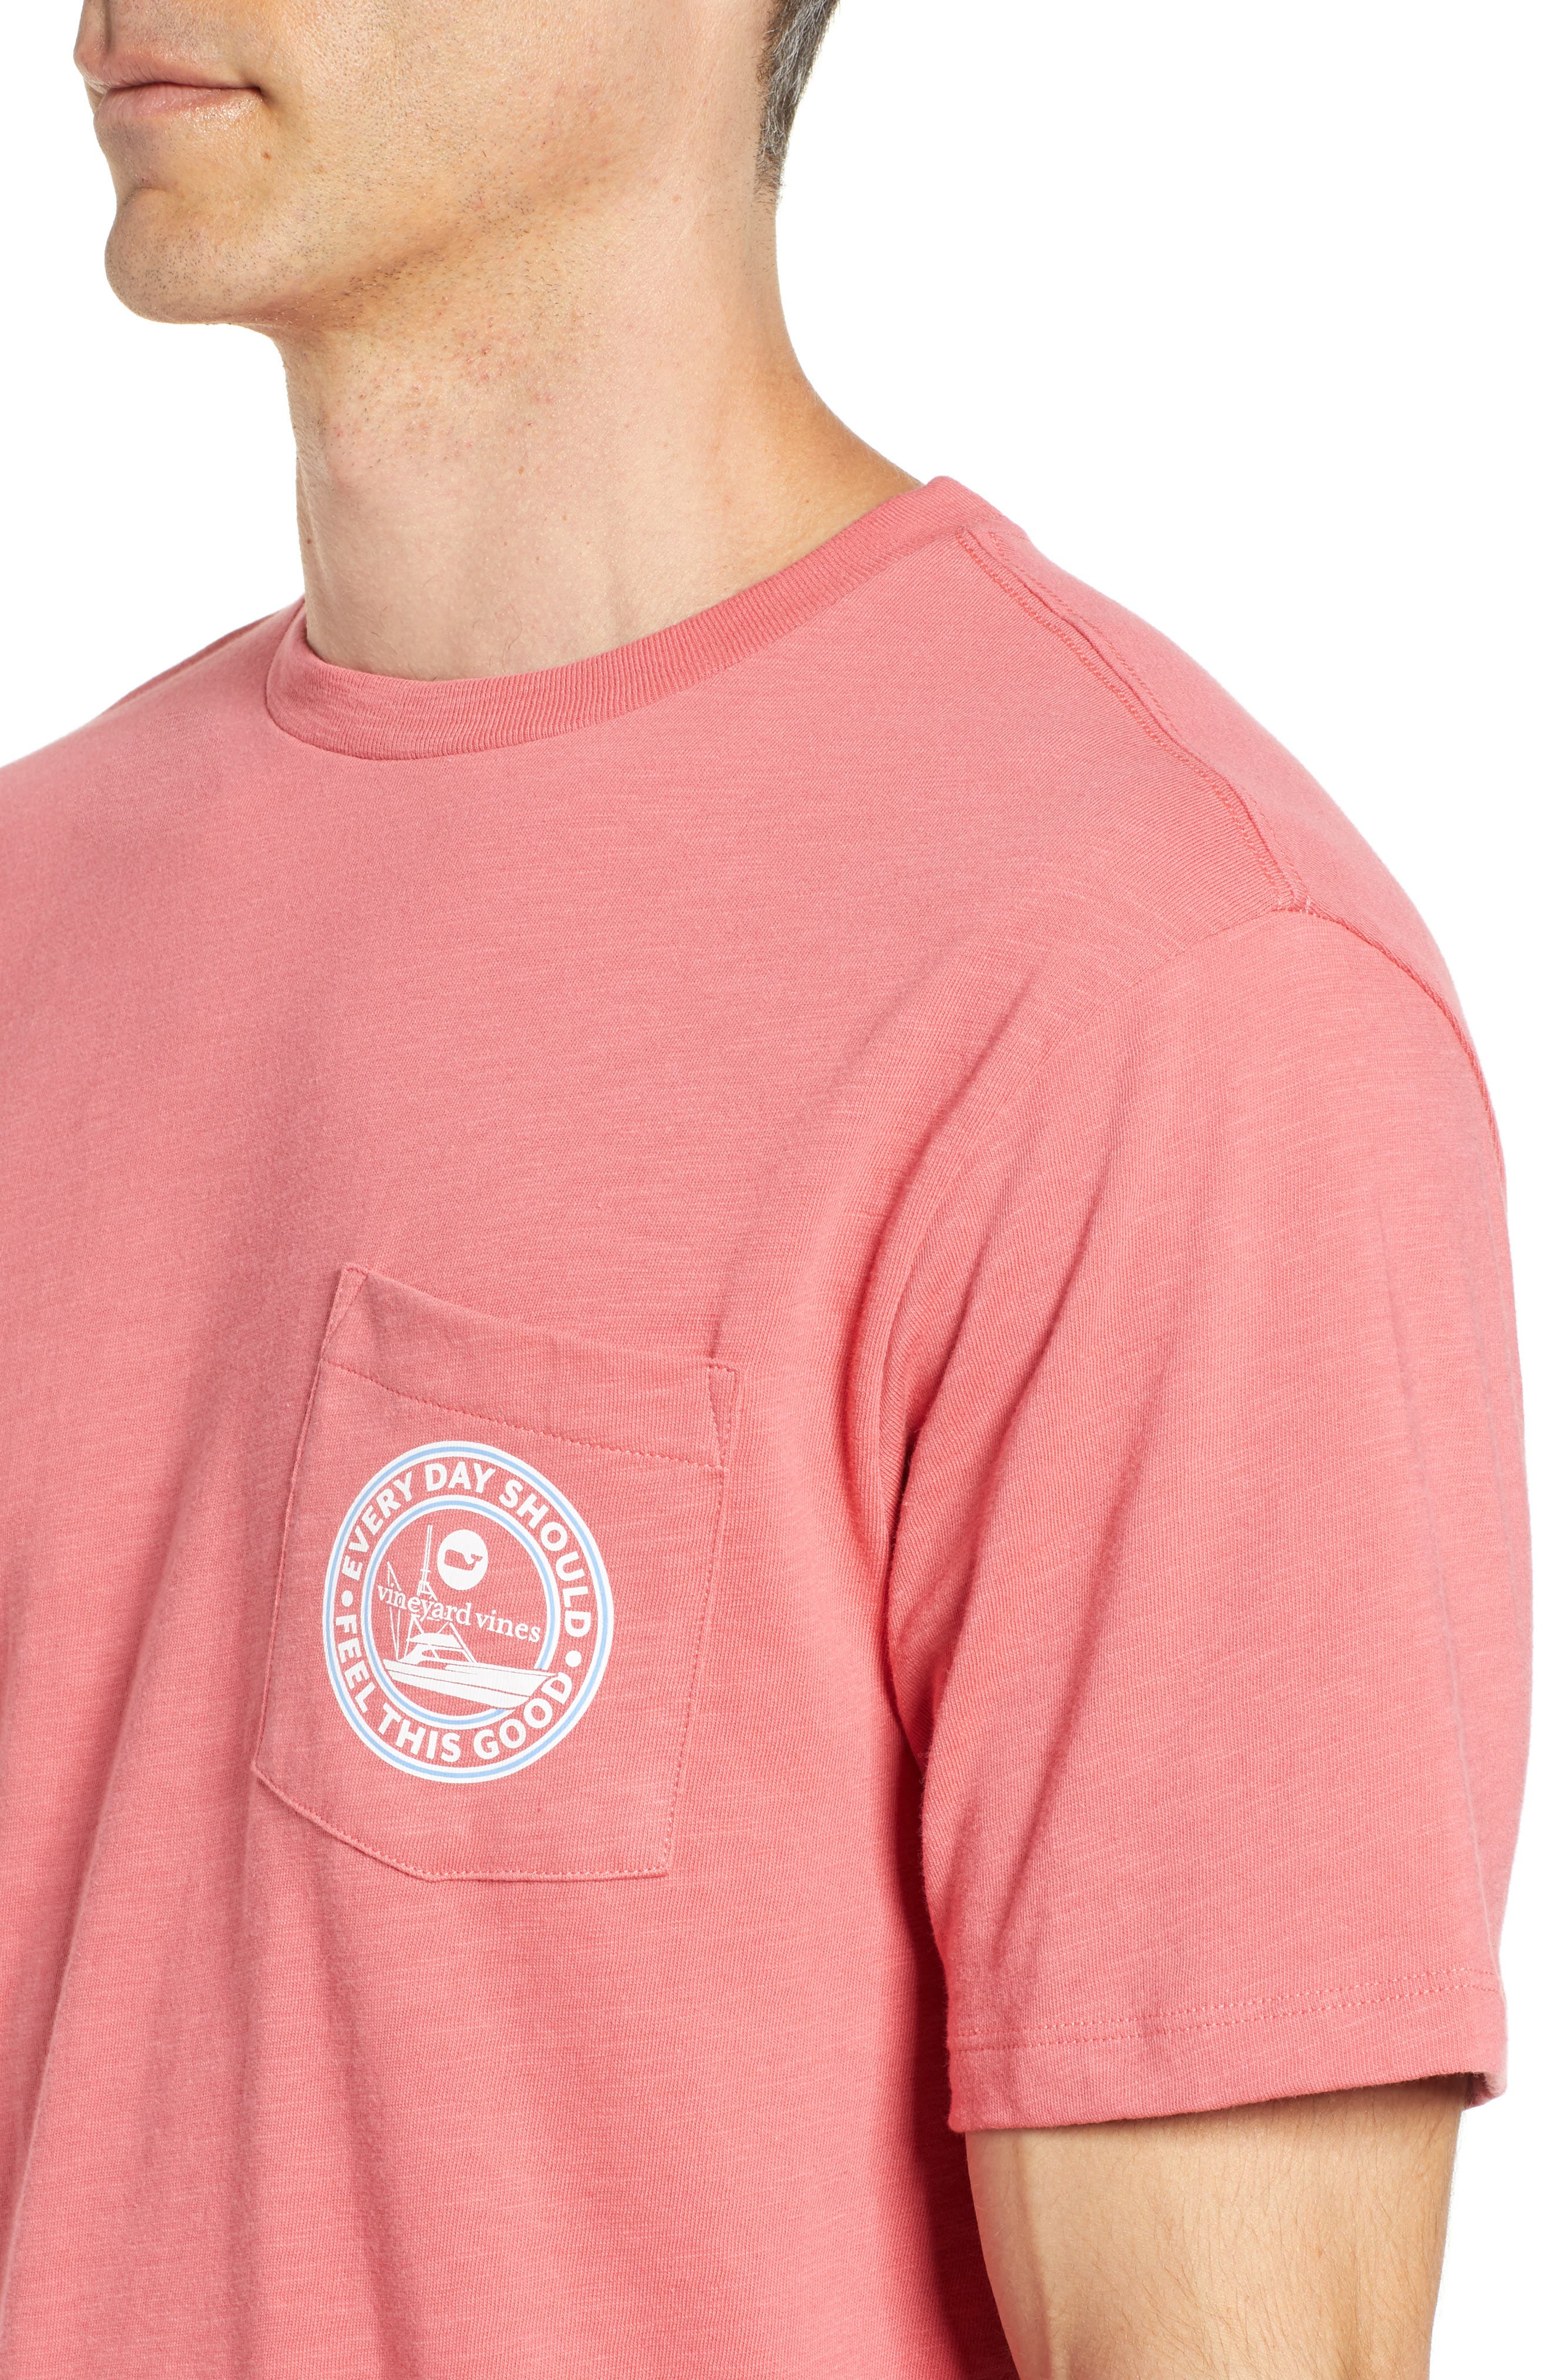 Every Day Should Feel This Good Pocket T-Shirt,                             Alternate thumbnail 4, color,